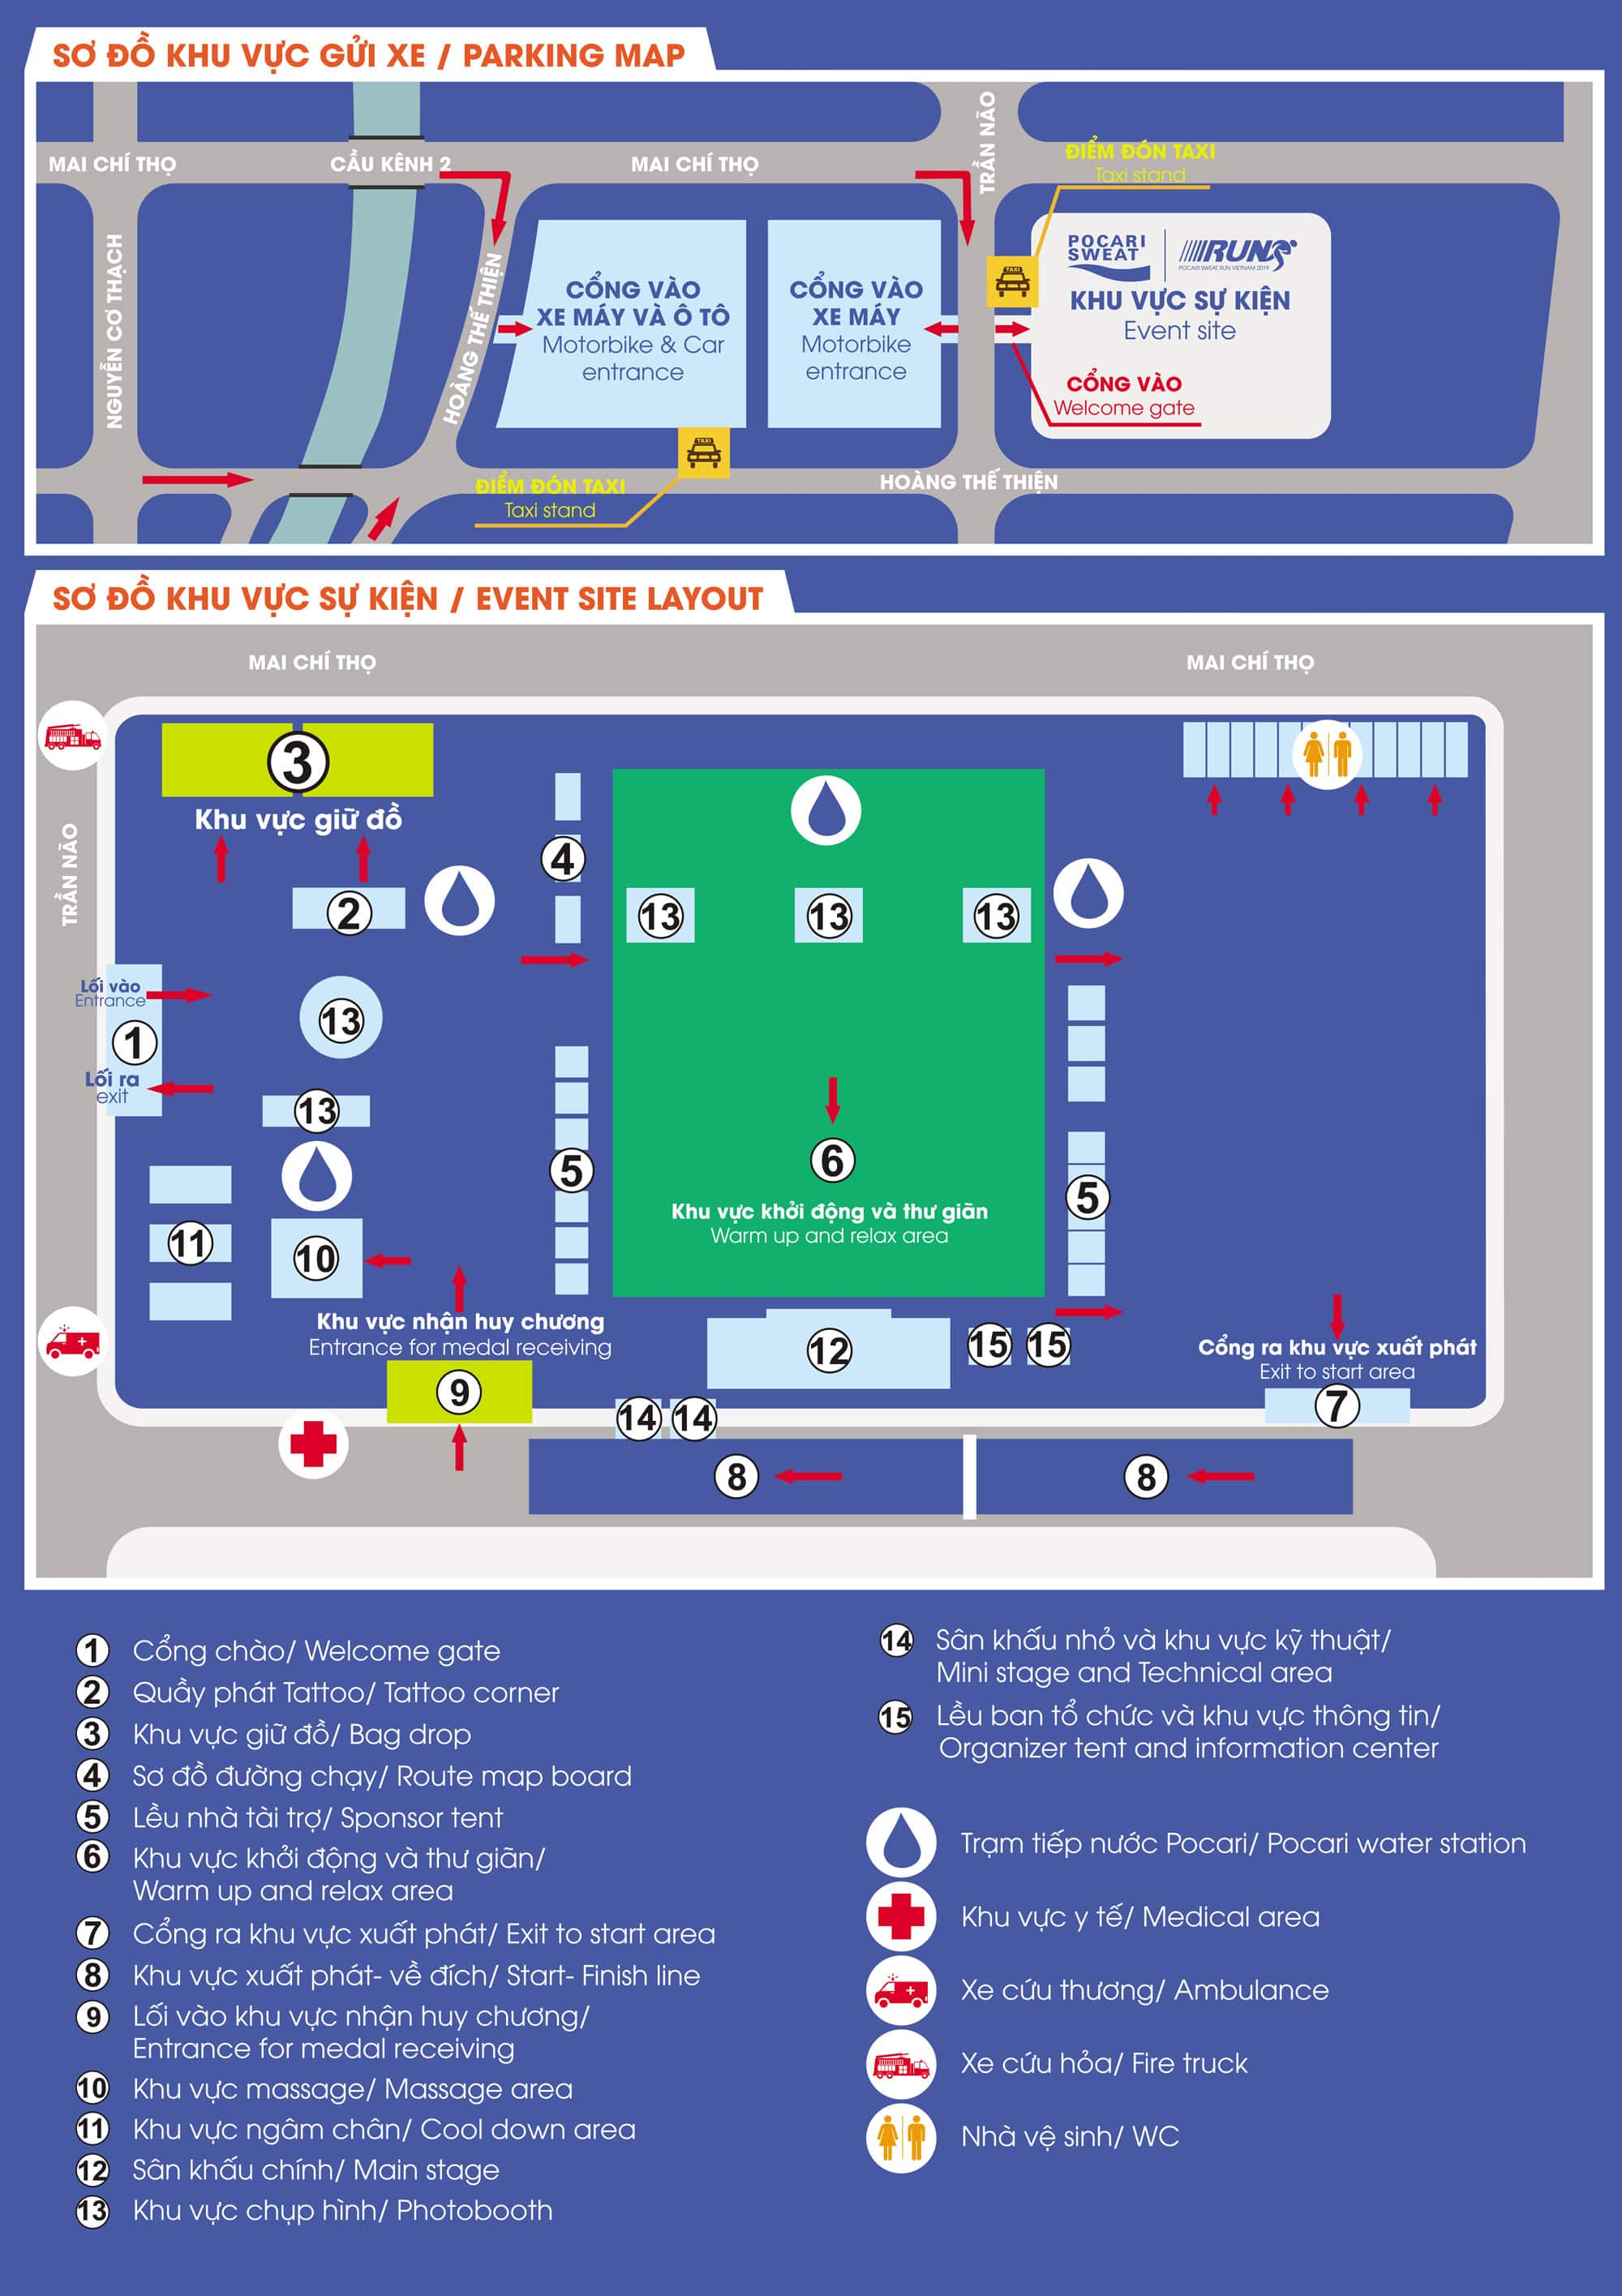 Event site layout FINAL 4.11 2